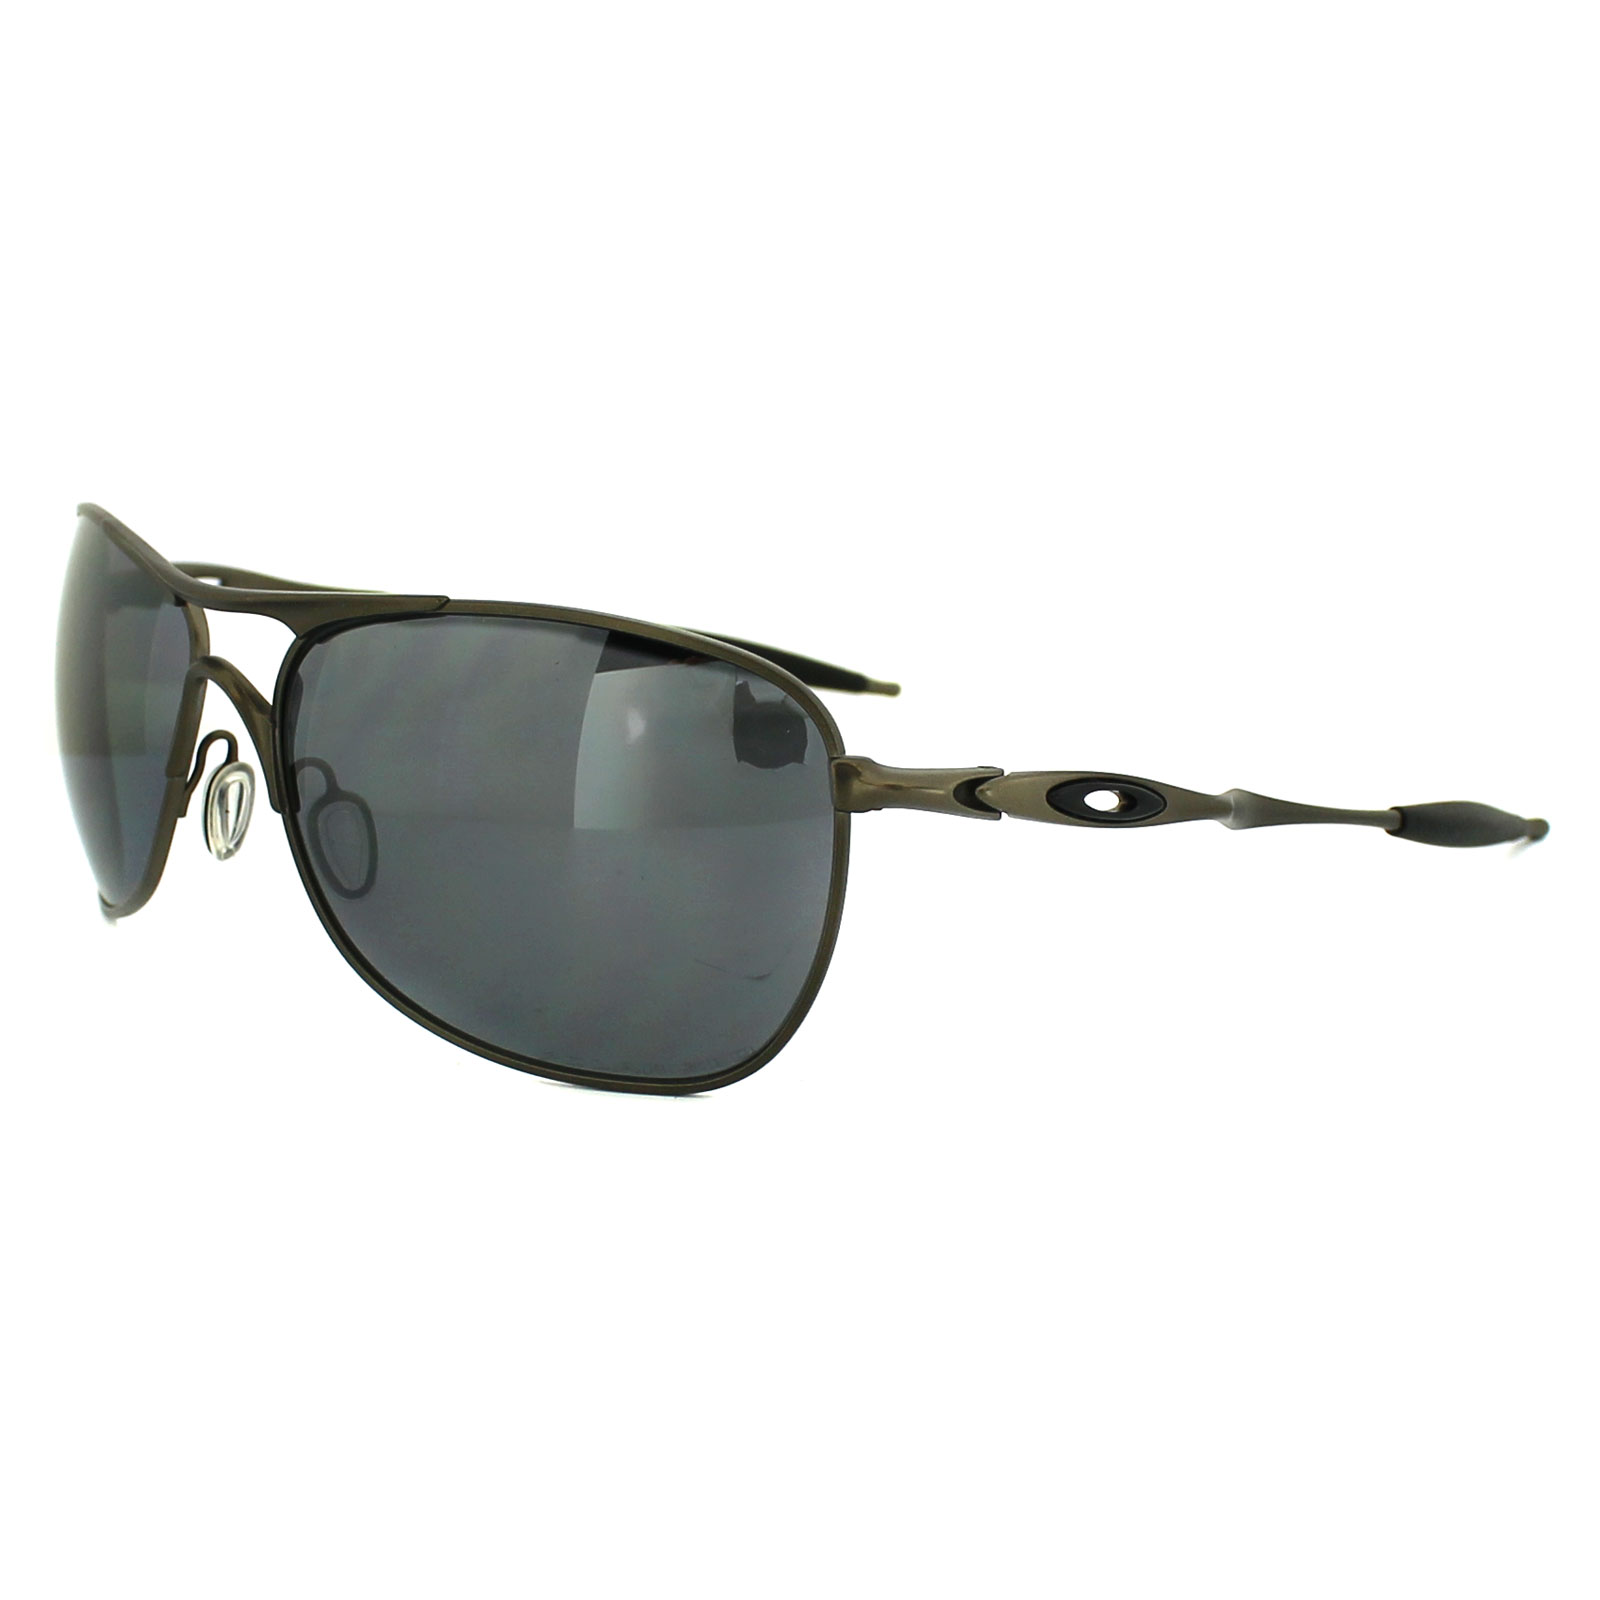 oakley polarized titanium crosshair sunglasses  oakley sunglasses ti crosshair pewter black iridium polarized oo6014 02